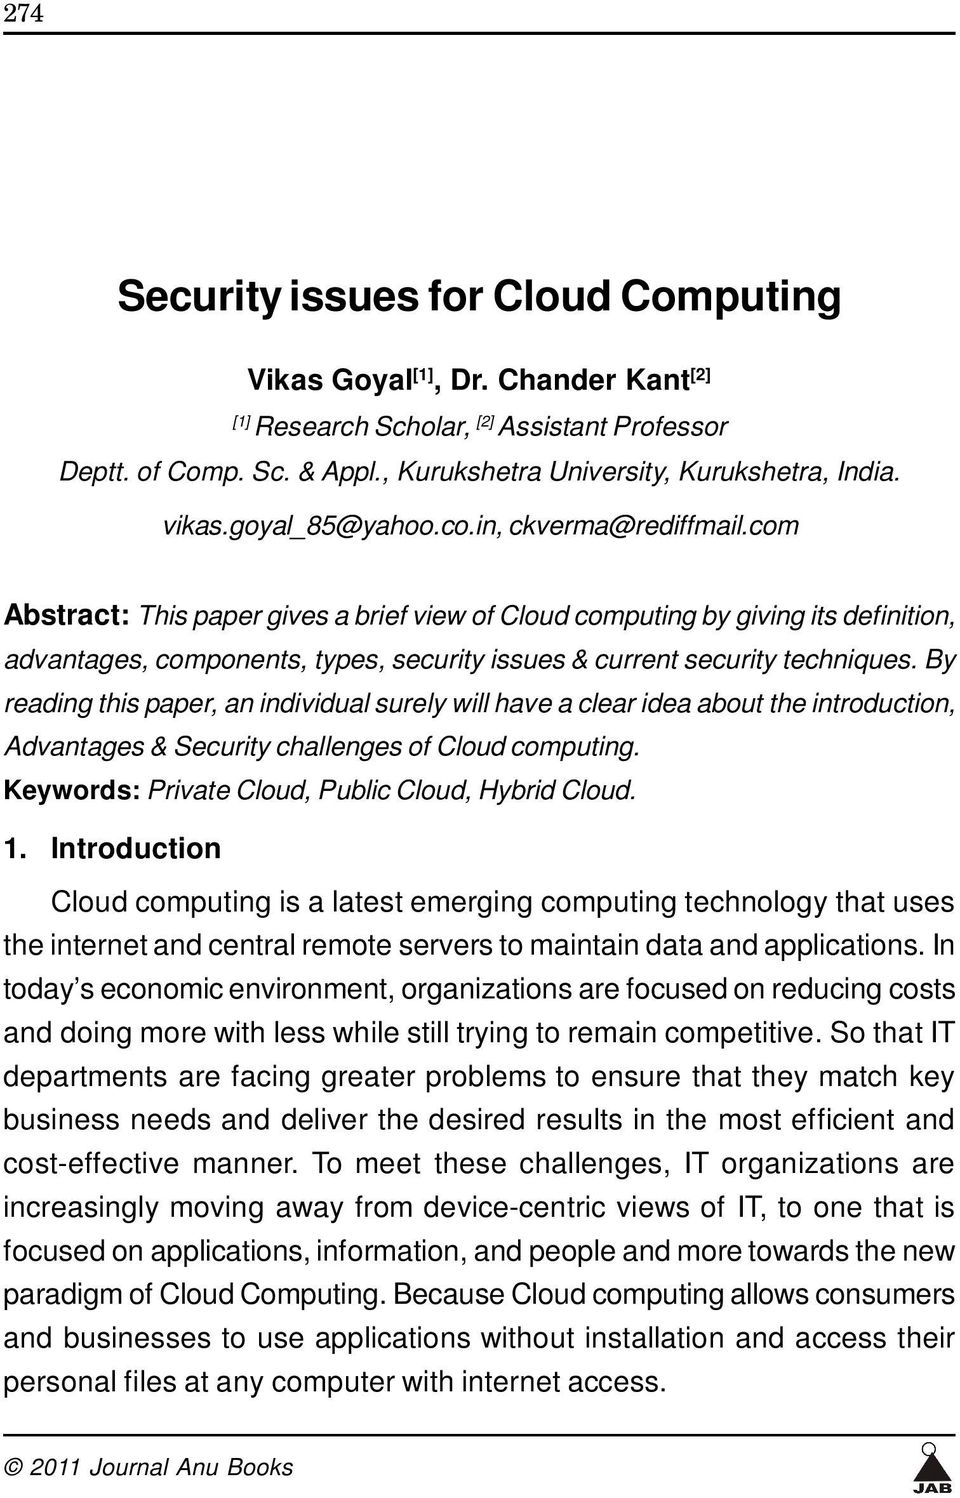 com Abstract: This paper gives a brief view of Cloud computing by giving its definition, advantages, components, types, security issues & current security techniques.